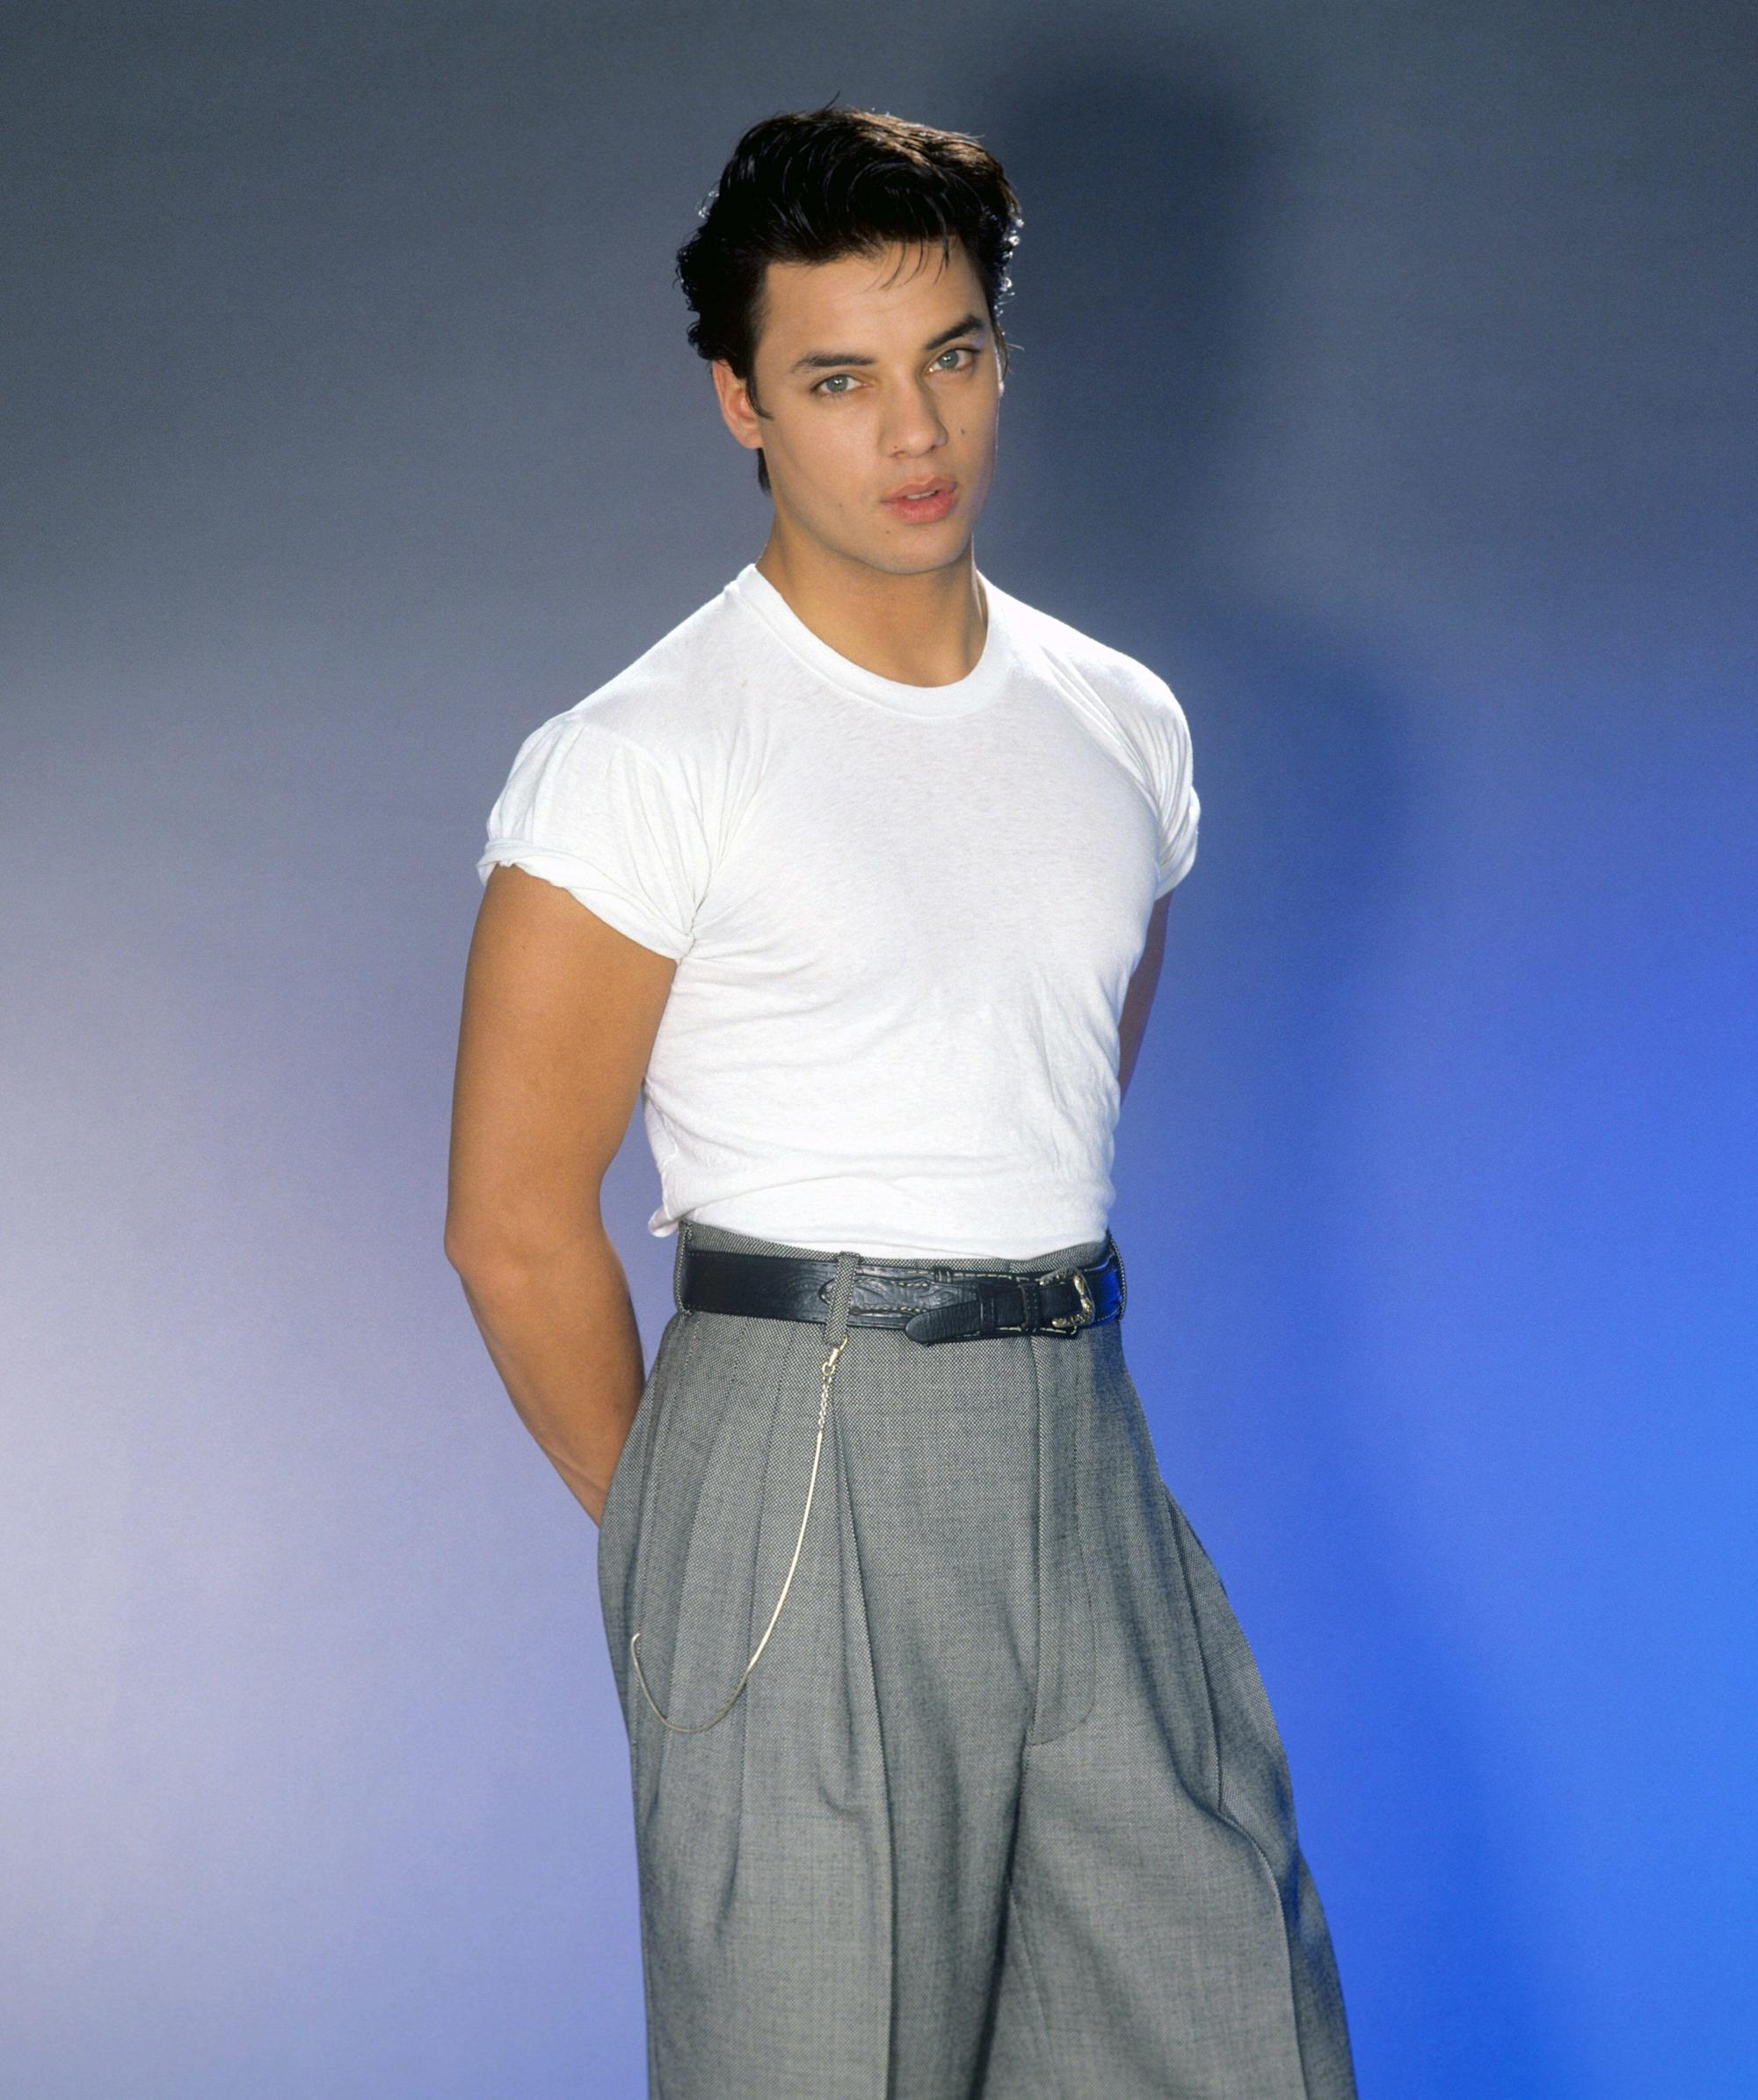 Nick Kamen, Model, Singer And Star Of Iconic Levi's Ad, Has Died Aged 59